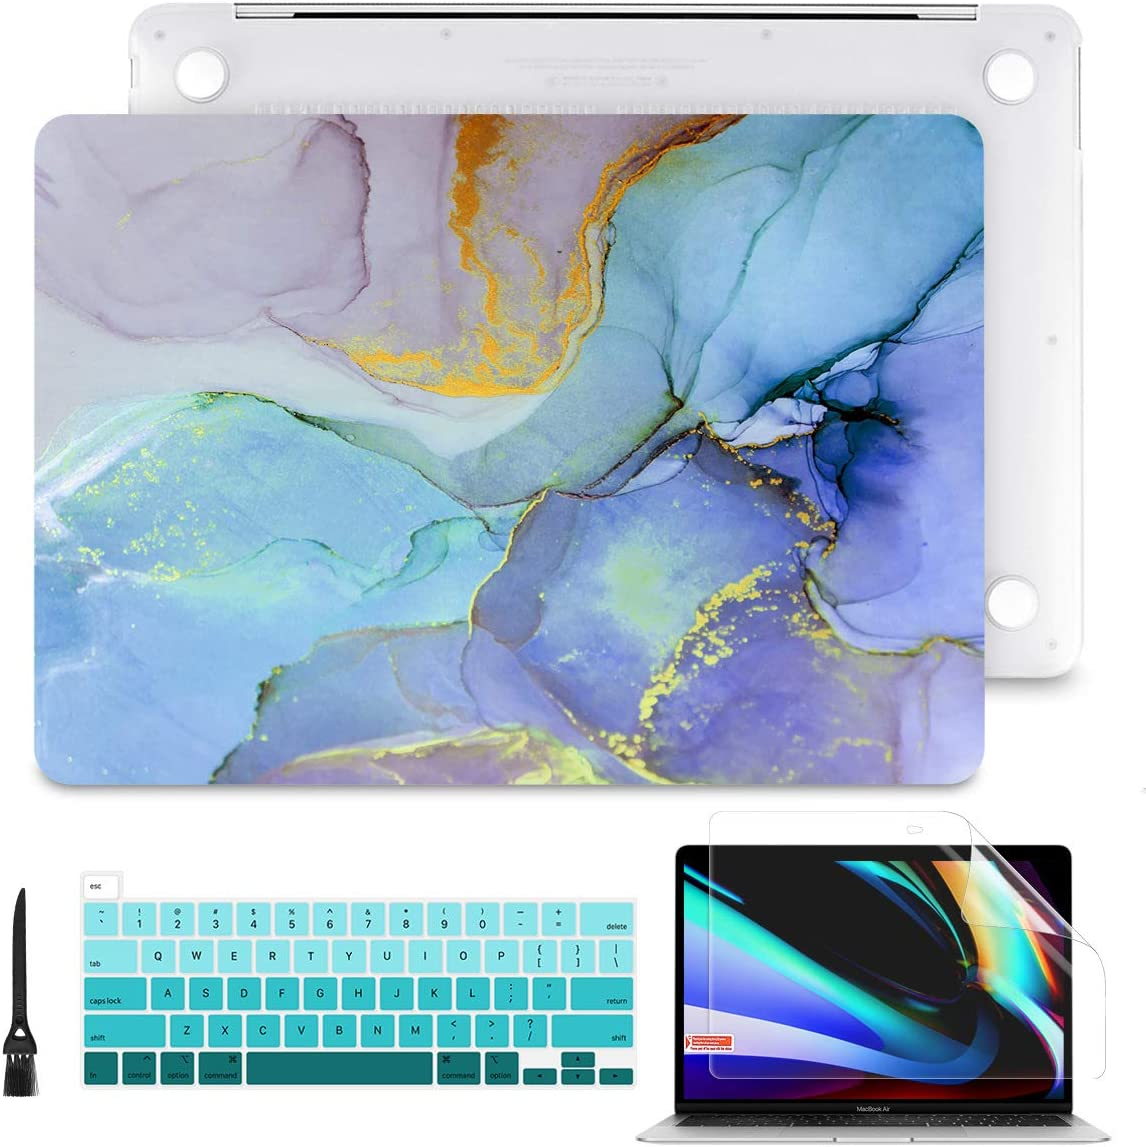 Batianda Laptop Case for MacBook Pro 13 2020 Rlease Plastice Hard Shell Cover with Keyboard Cover and Screen Protector Model A2289/A2251,Colorful Marble